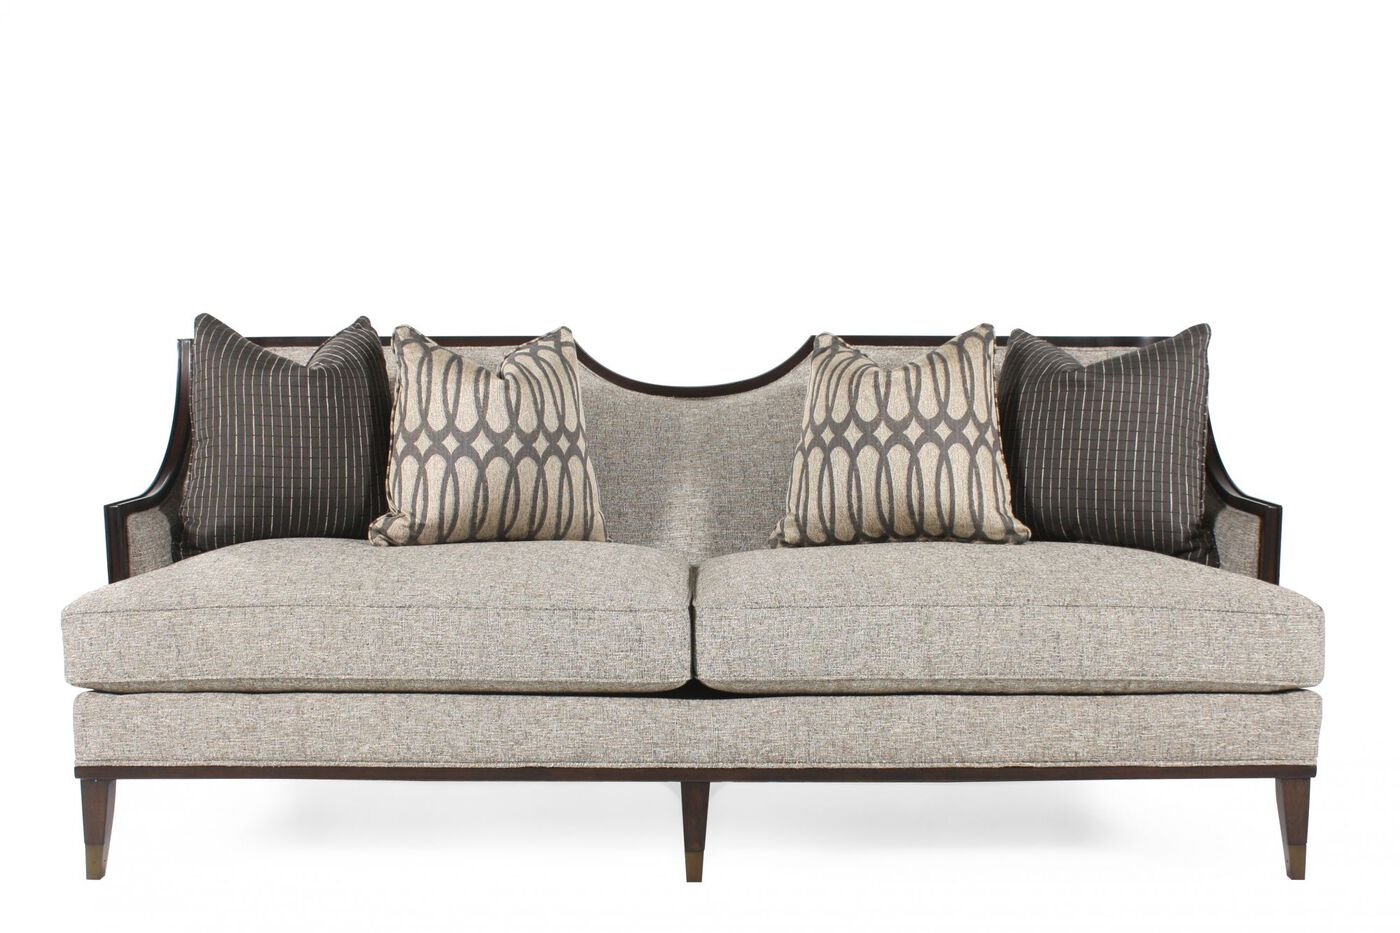 Mid century modern wood trimmed 84 5 sofa in gray mathis brothers furniture for Mathis brothers living room furniture